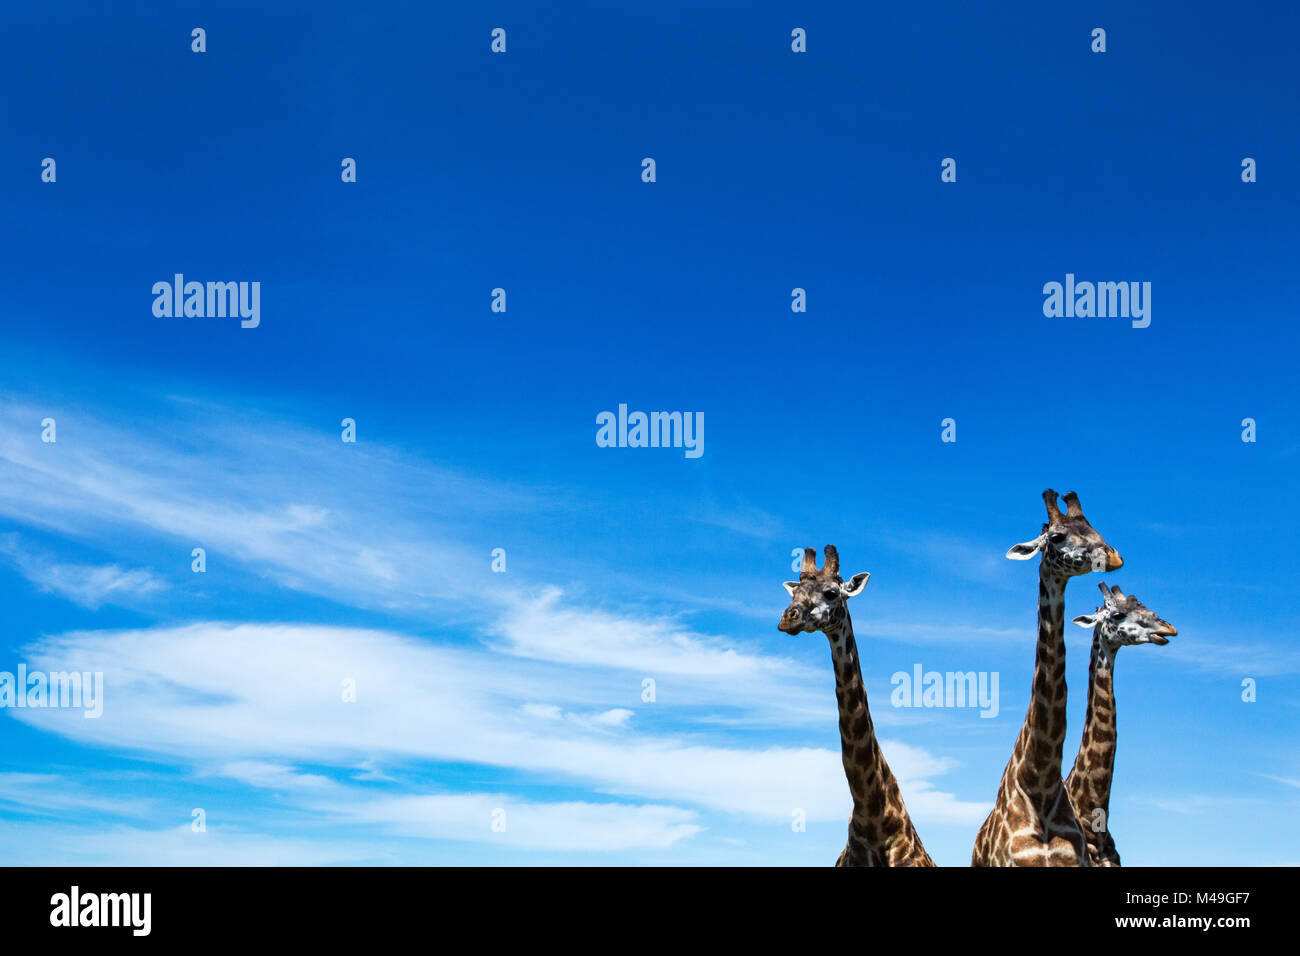 Maasai giraffe (Giraffa camelopardalis tippelskirchi) three standing together, heads and necks against sky. Maasai - Stock Image